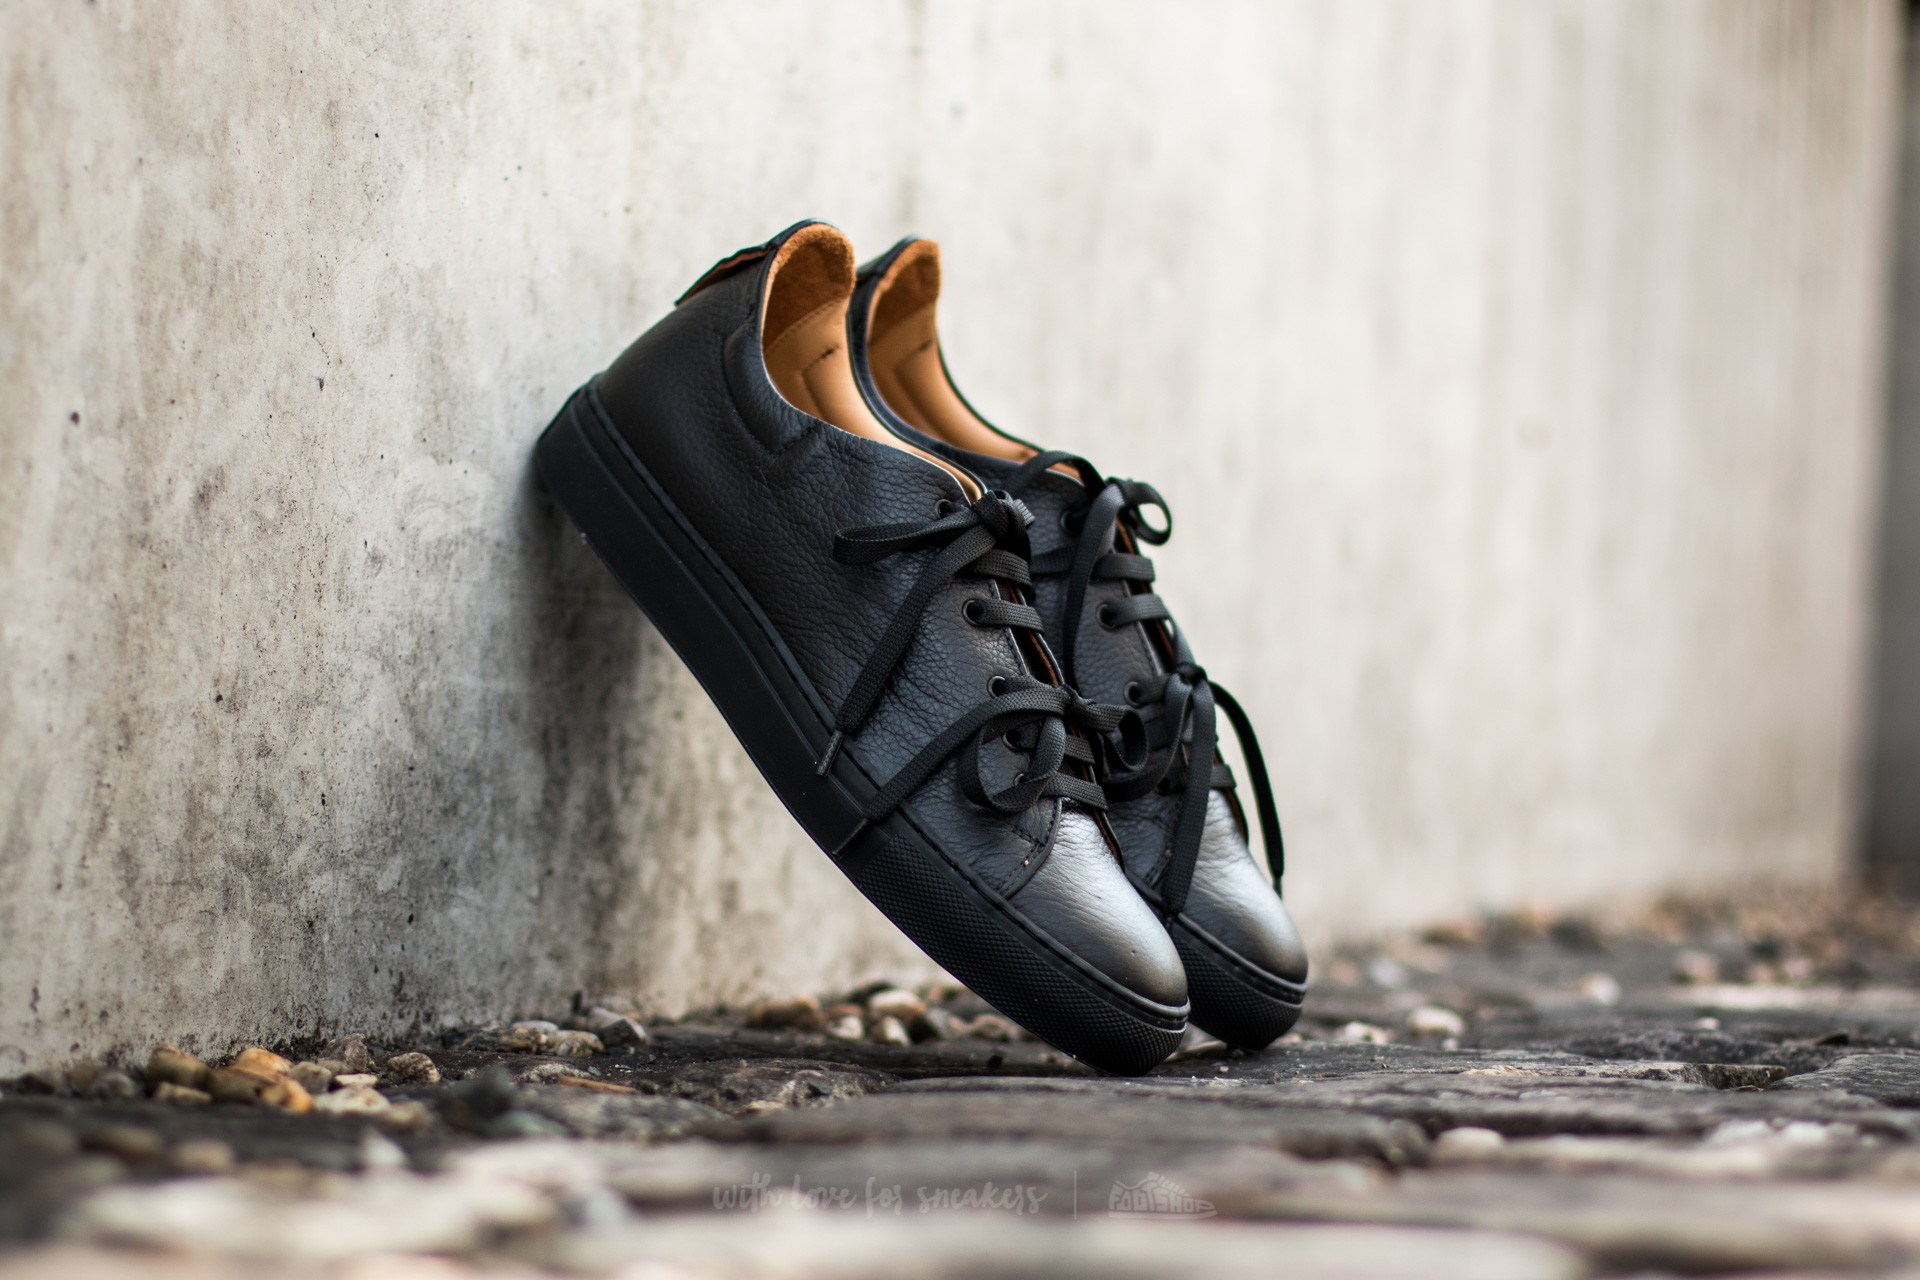 Marco Laganà Sneaker Leather Black-Black Sole - 10090